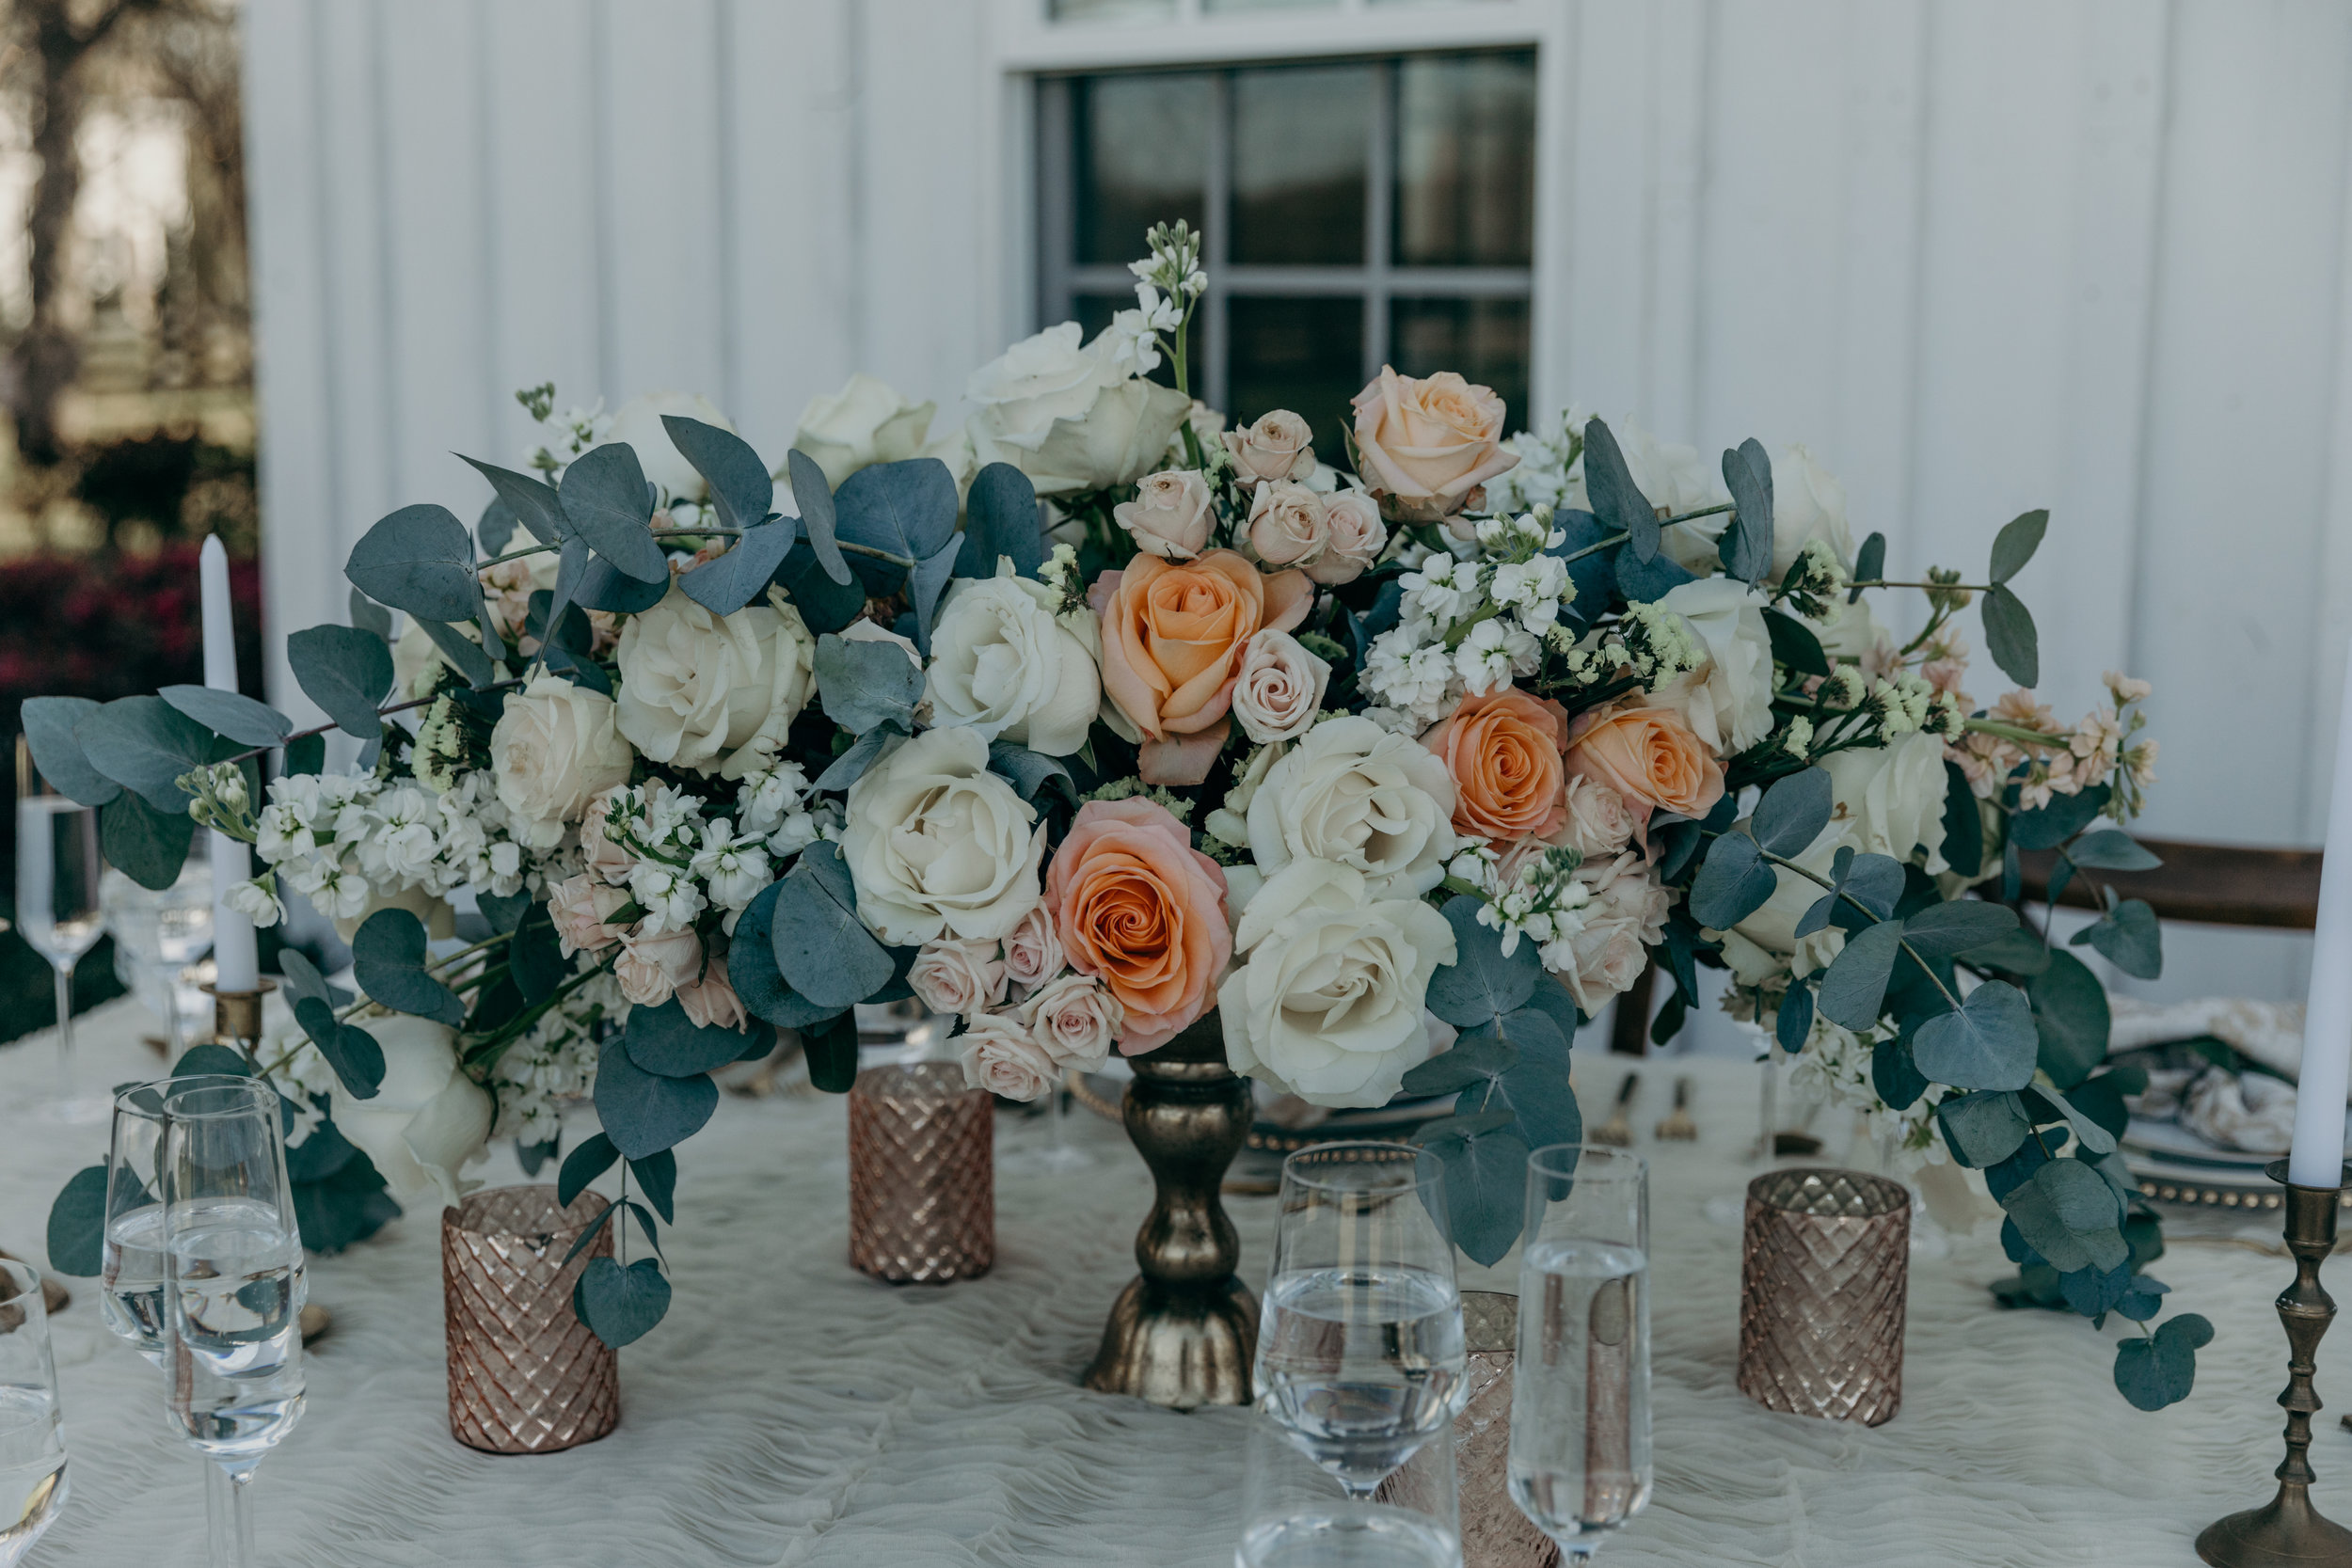 TheWhiteSparrowStyledWeddingShootinTexas-78.jpg